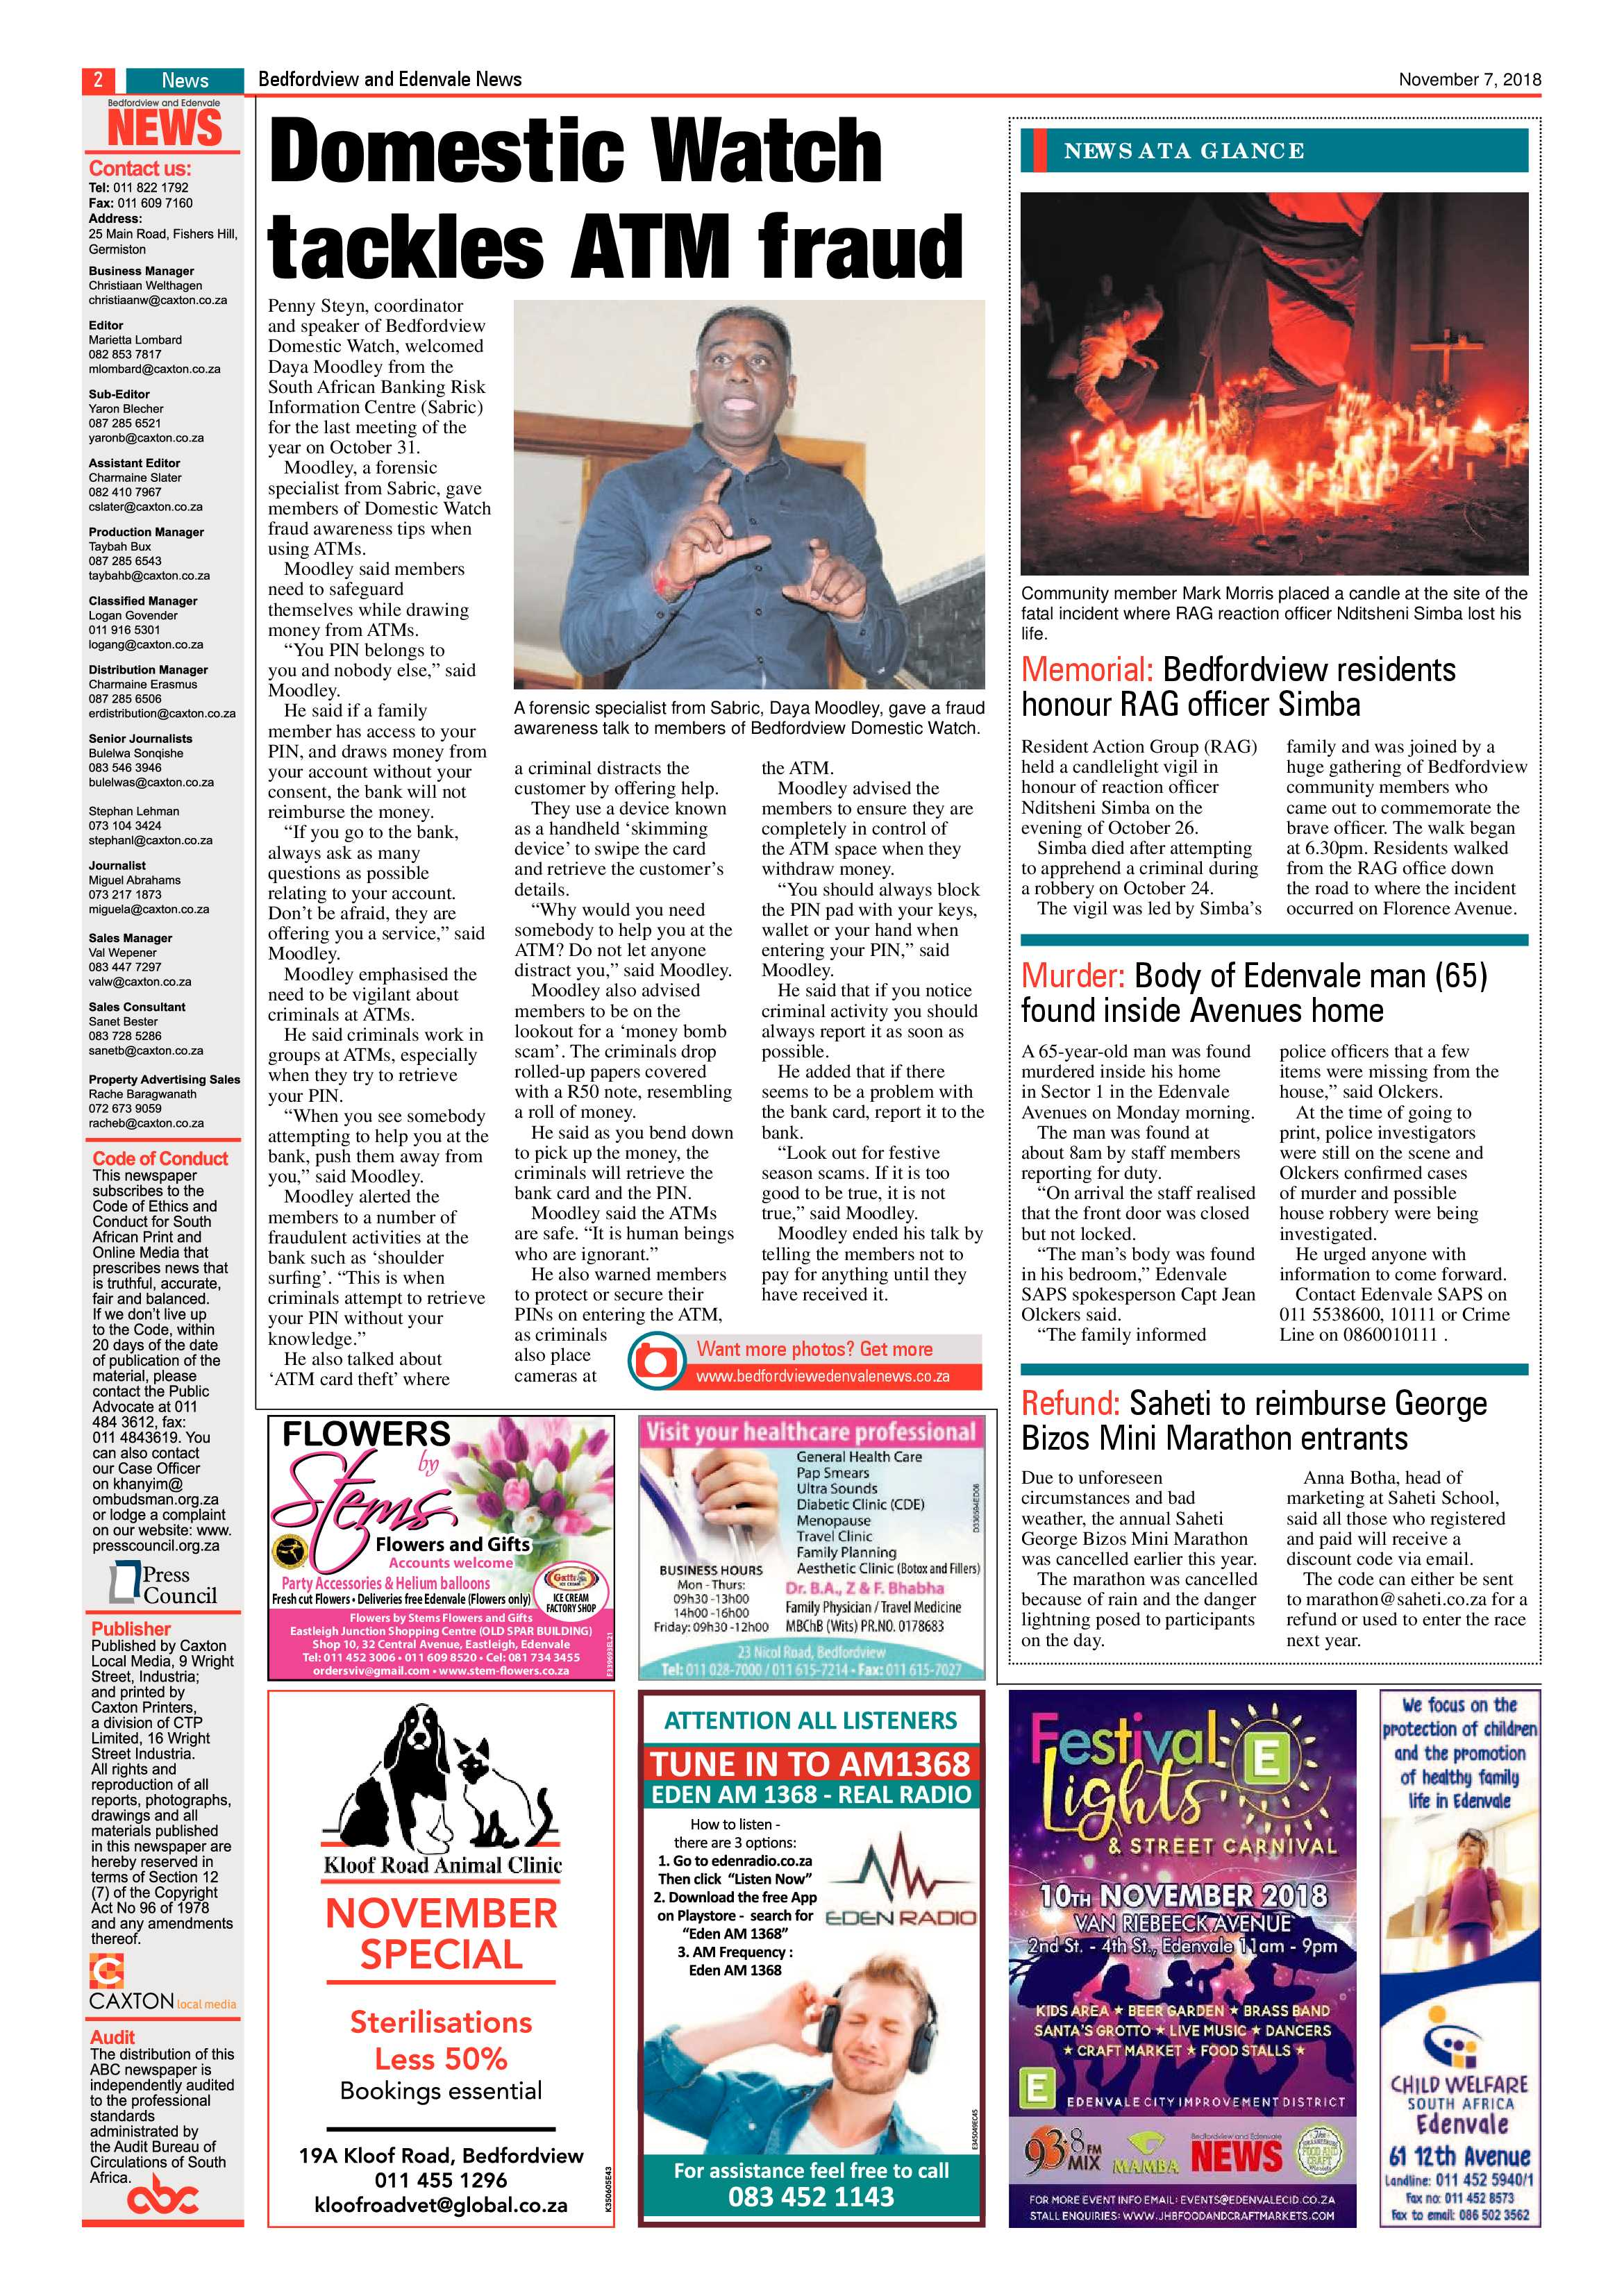 bedfordview-edenvale-news-07-november-2018-epapers-page-2